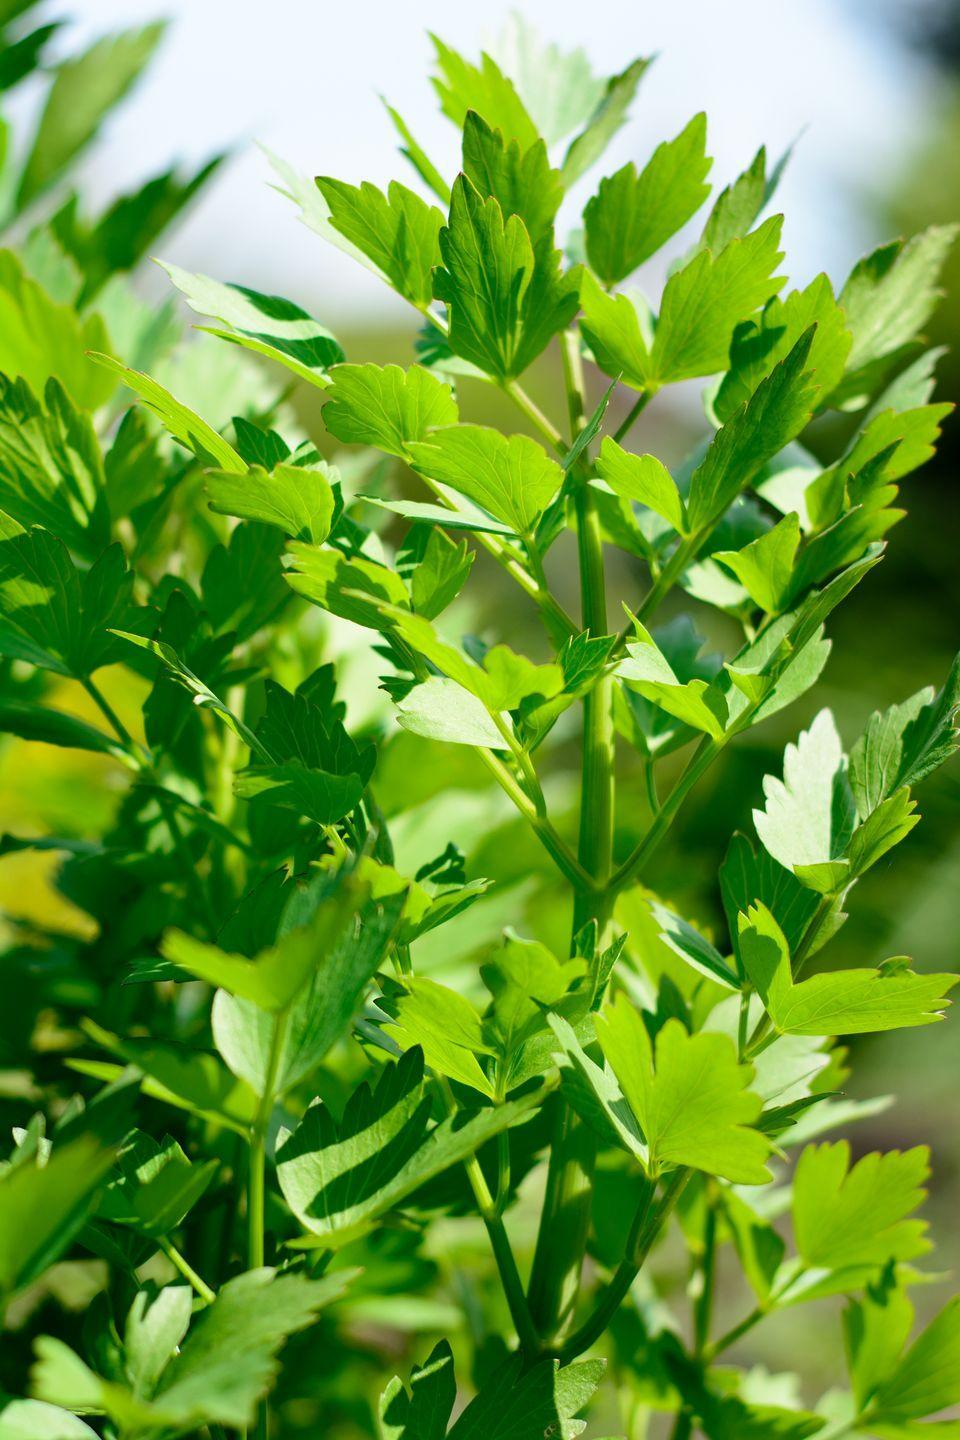 """<p>Lovage is an old-fashioned herb that's mostly overlooked even though it shouldn't be! This hardy plant's leaves have a sweet celery-like flavor. It's heat and cold tolerant and can grow up to 5-feet tall in a single season. Try it in soups or salads.</p><p><a class=""""link rapid-noclick-resp"""" href=""""https://hudsonvalleyseed.com/products/lovage"""" rel=""""nofollow noopener"""" target=""""_blank"""" data-ylk=""""slk:SHOP NOW"""">SHOP NOW</a></p>"""